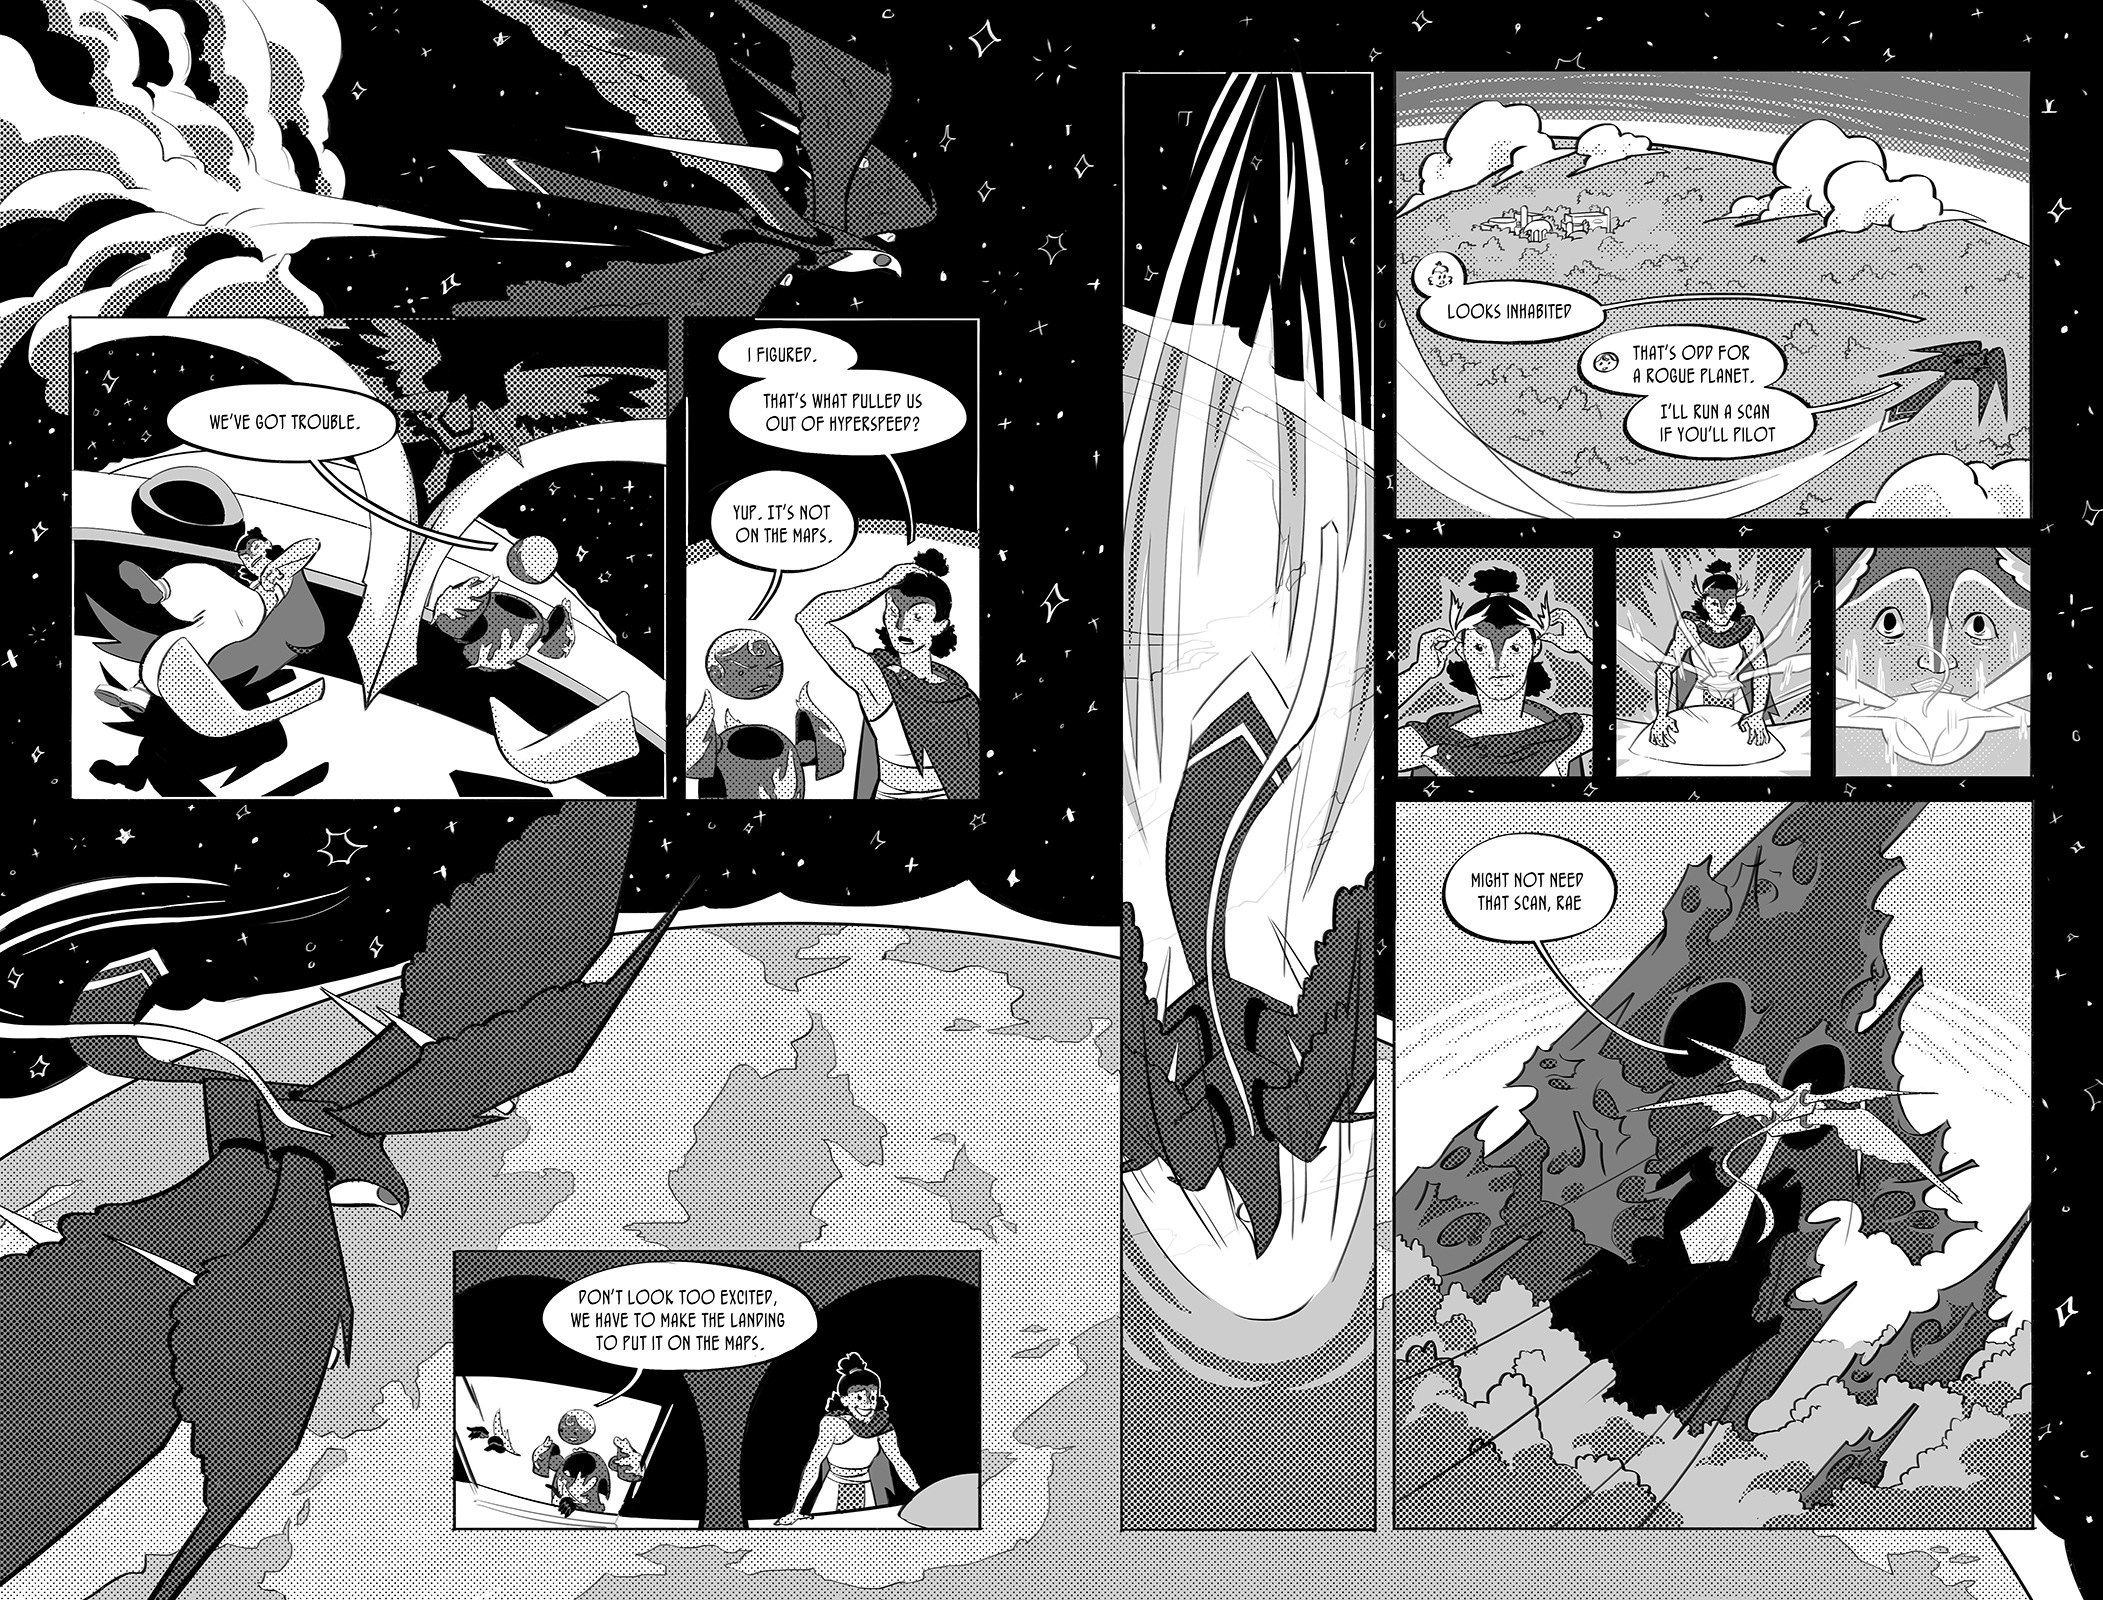 Jettisoned pages two and three. The Peregrinus is pulled out of hyperspeed by the gravity of an unknown planet. Marra and Rae make an emergency landing in the hopes of surviving to chart the new planet. On their way down they spot signs of life right before a giant, mountainous creature rises from the trees below.